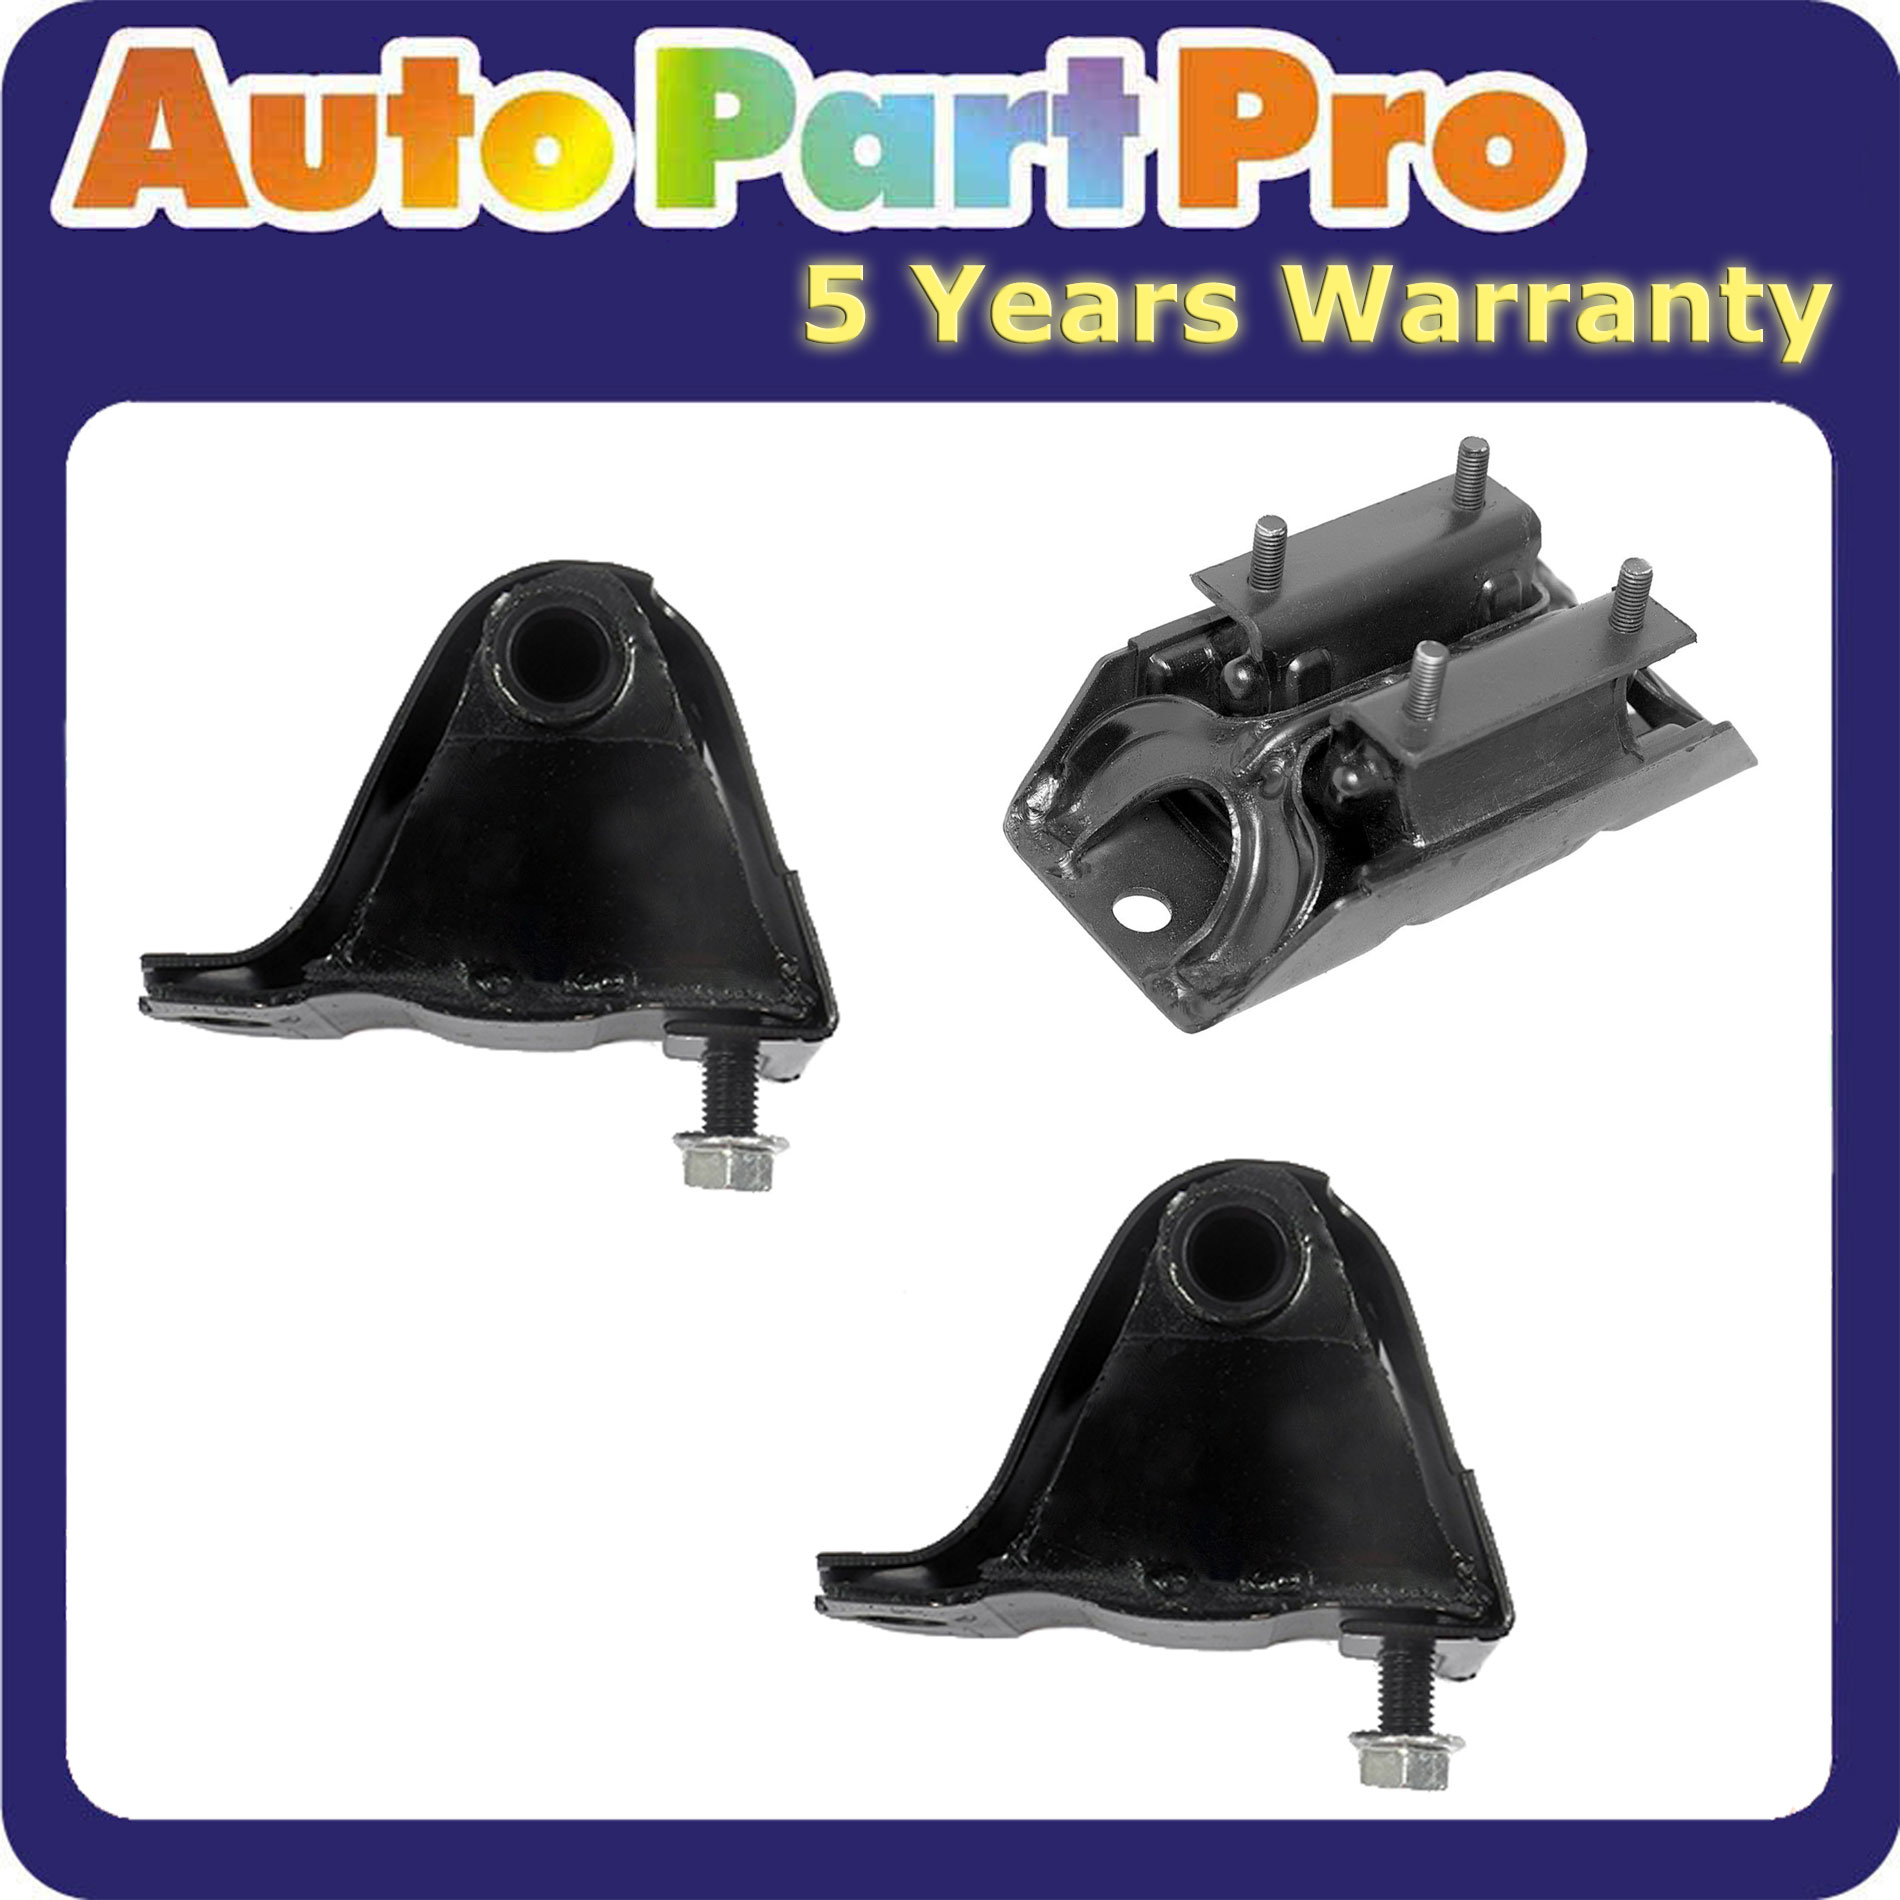 Auto RWD Motor Mounts /& Trans Mount Set 3PCS for 99-04 Jeep Grand Cherokee 4.0L